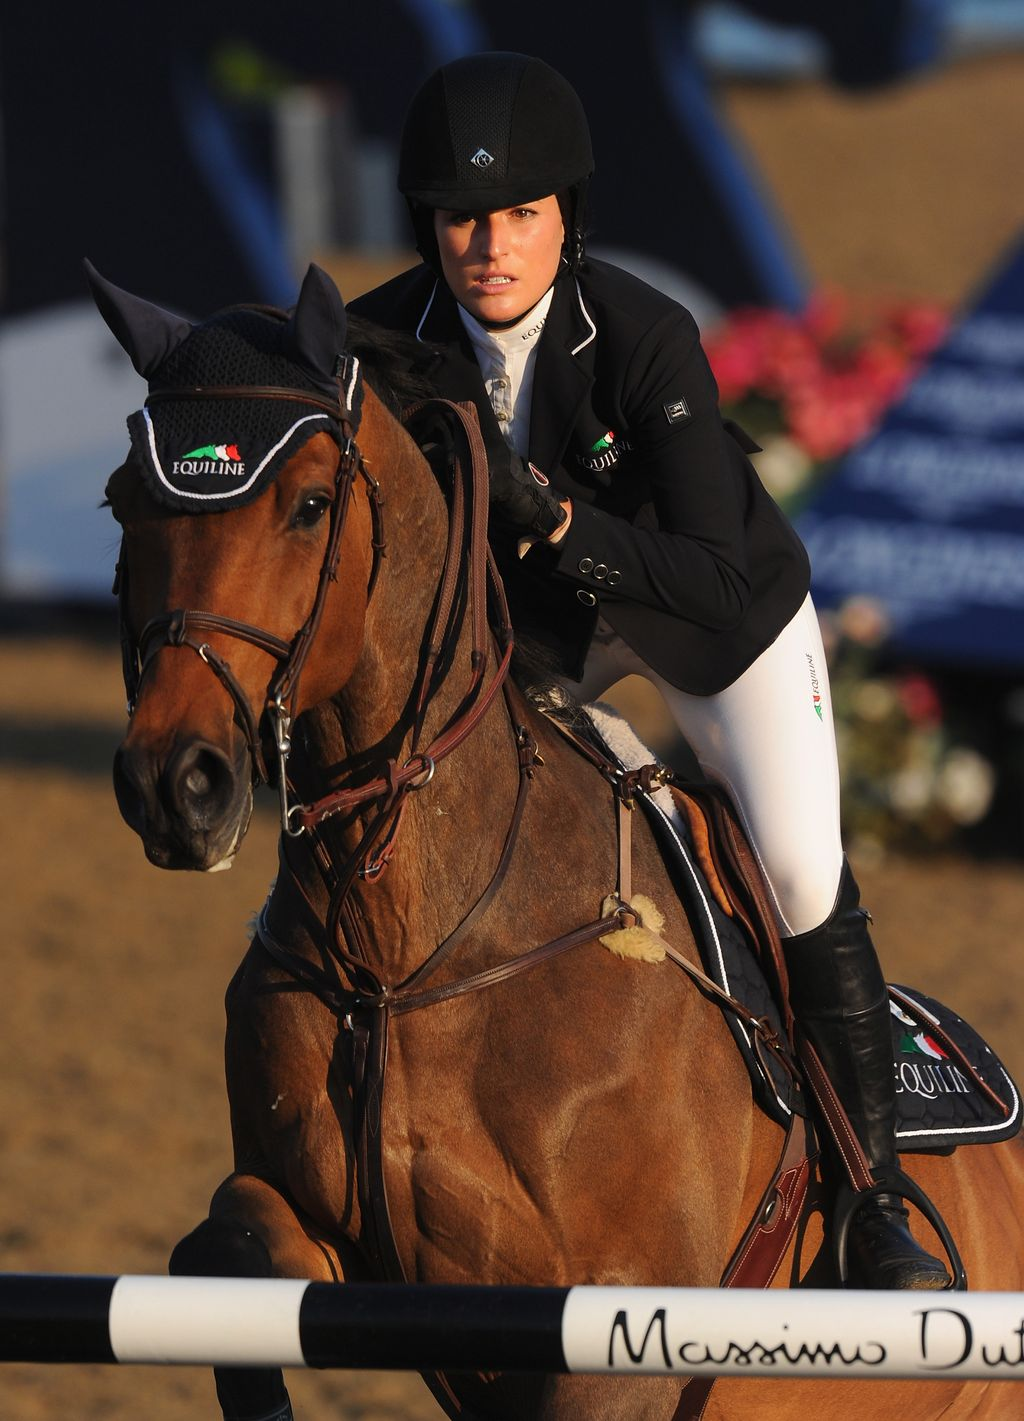 TOKYO, JAPAN - AUGUST 03: Jessica Springsteen of Team United States is seen prior the Jumping Individual Qualifier on day eleven of the Tokyo 2020 Olympic Games at Equestrian Park on August 03, 2021 in Tokyo, Japan. (Photo by Julian Finney/Getty Images)